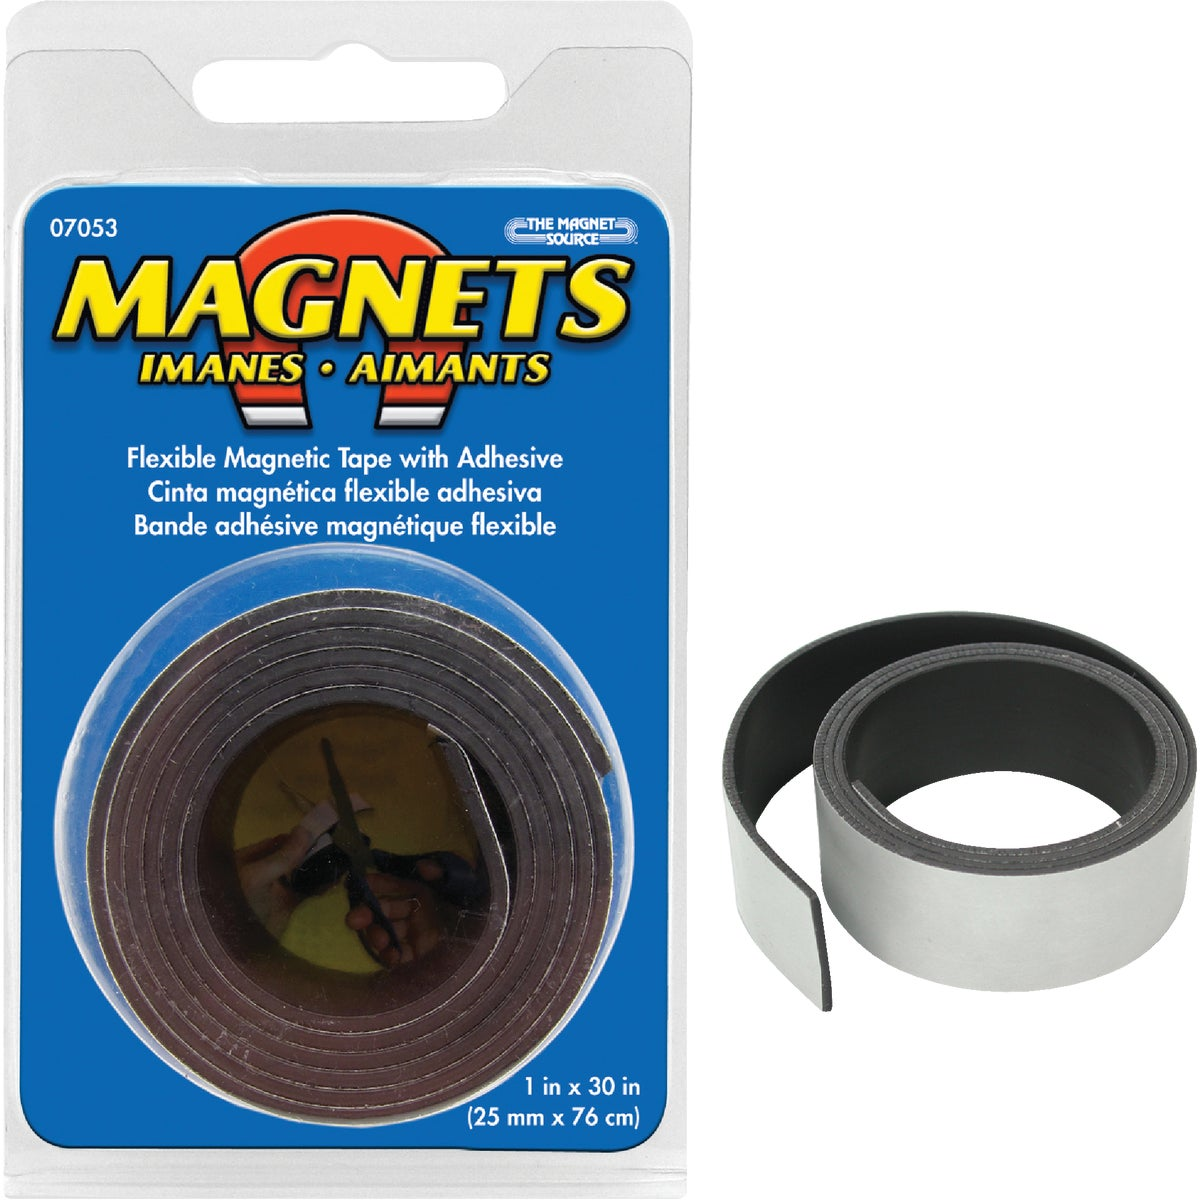 1X30 MAGNETIC TAPE - 07053 by Master Magnetics